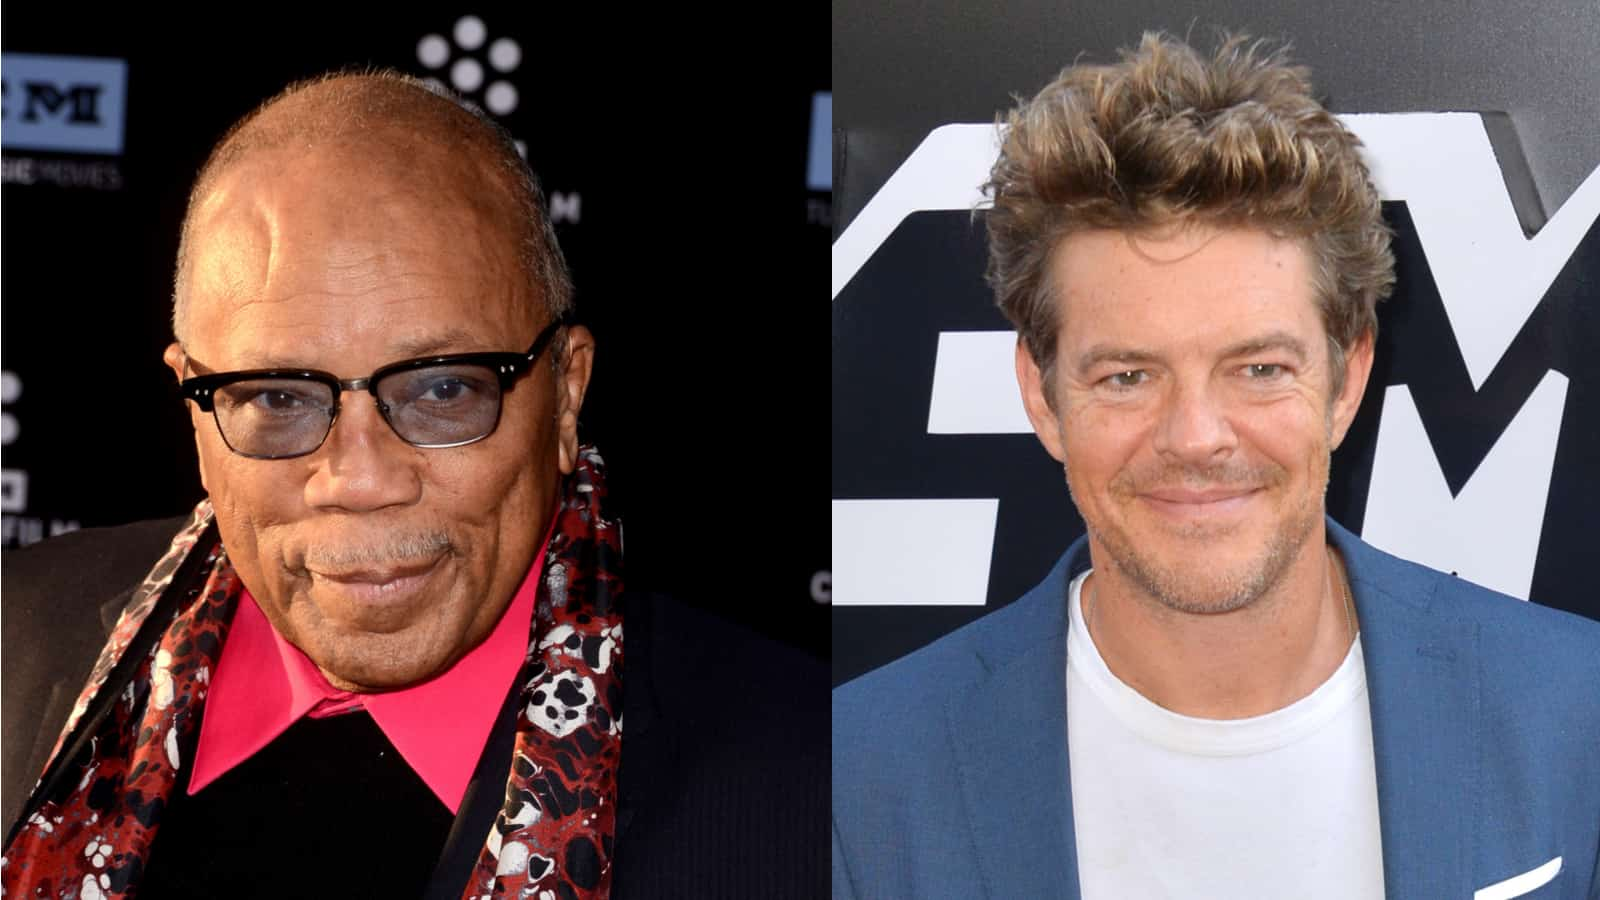 Quincy Jones and Jason Blum to Be Honored at 2019 AAFCA Awards